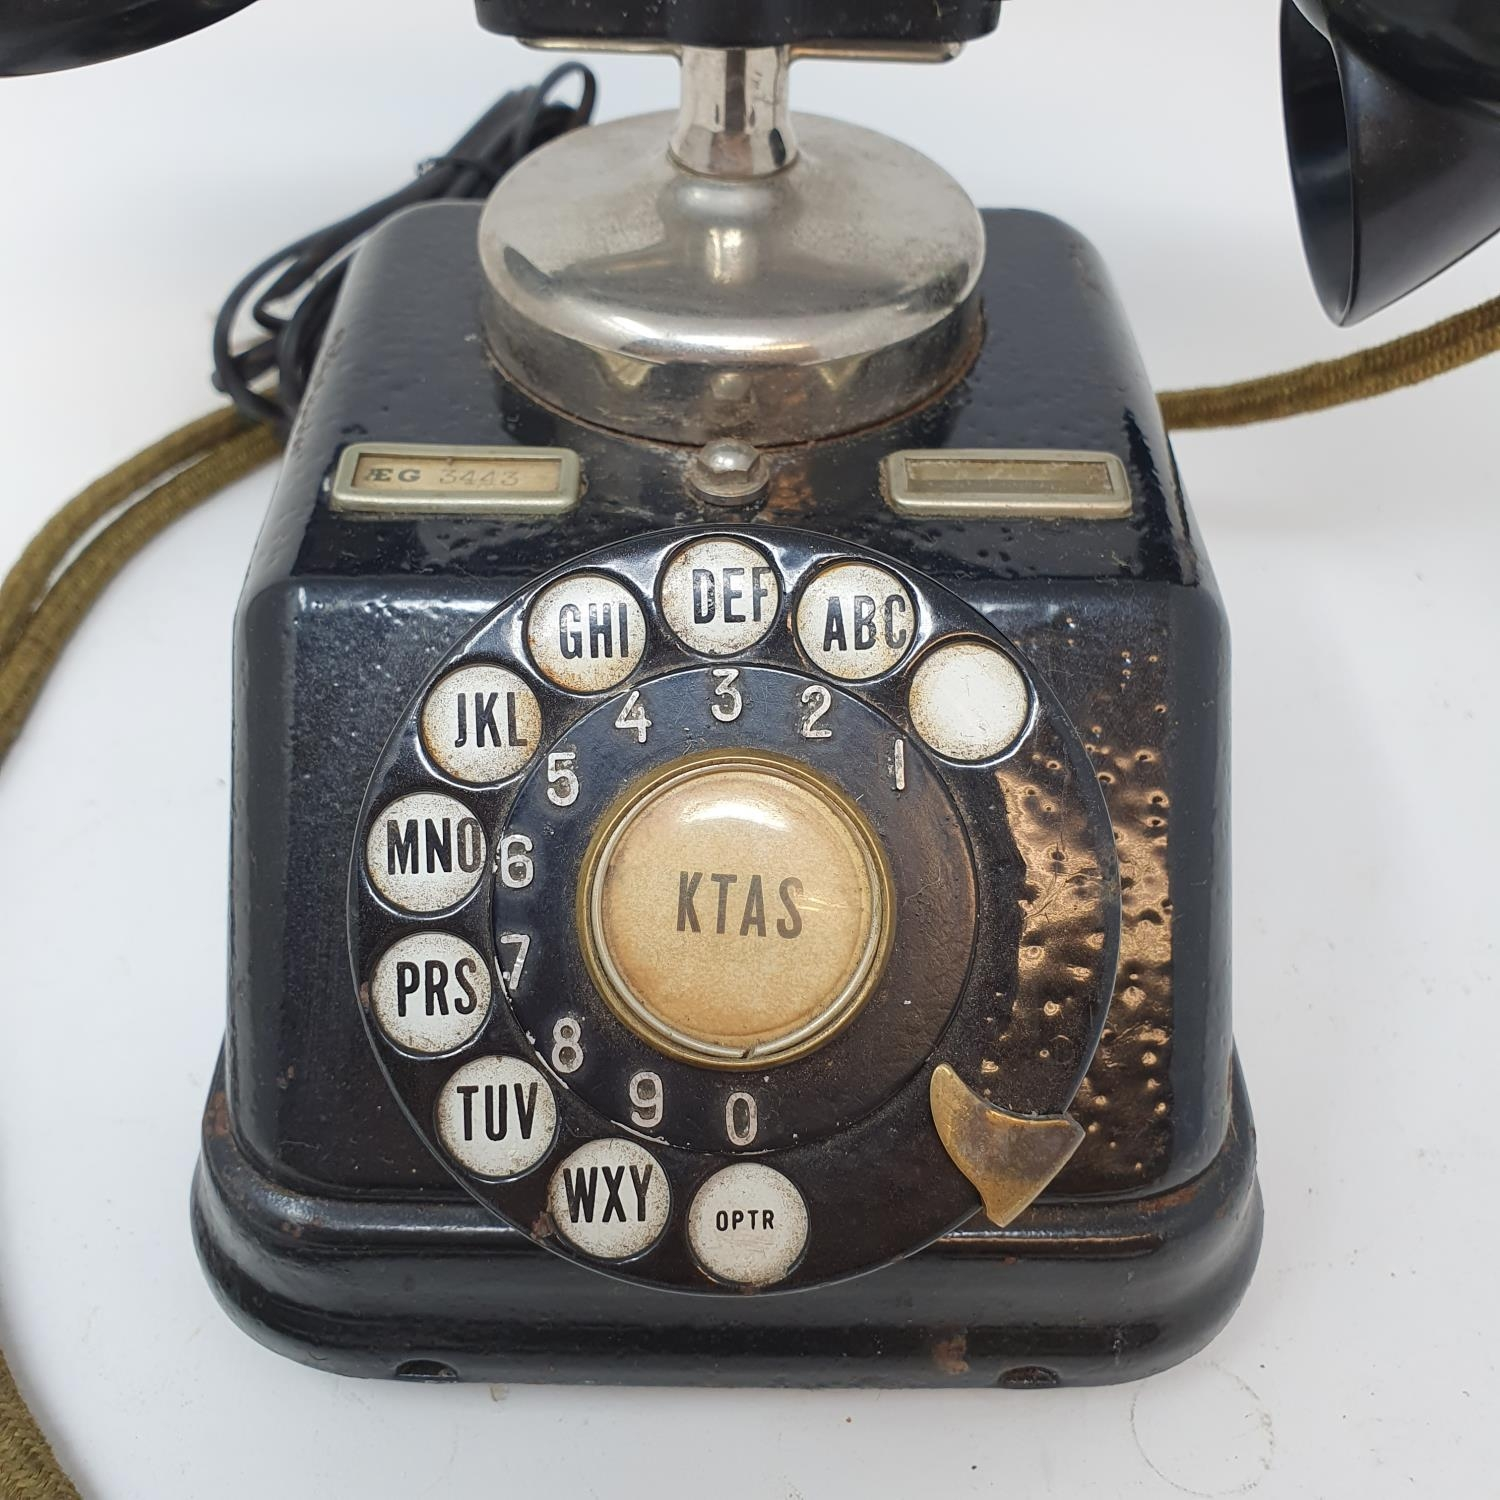 A Danish black dial phone 1930s converted - Image 2 of 2